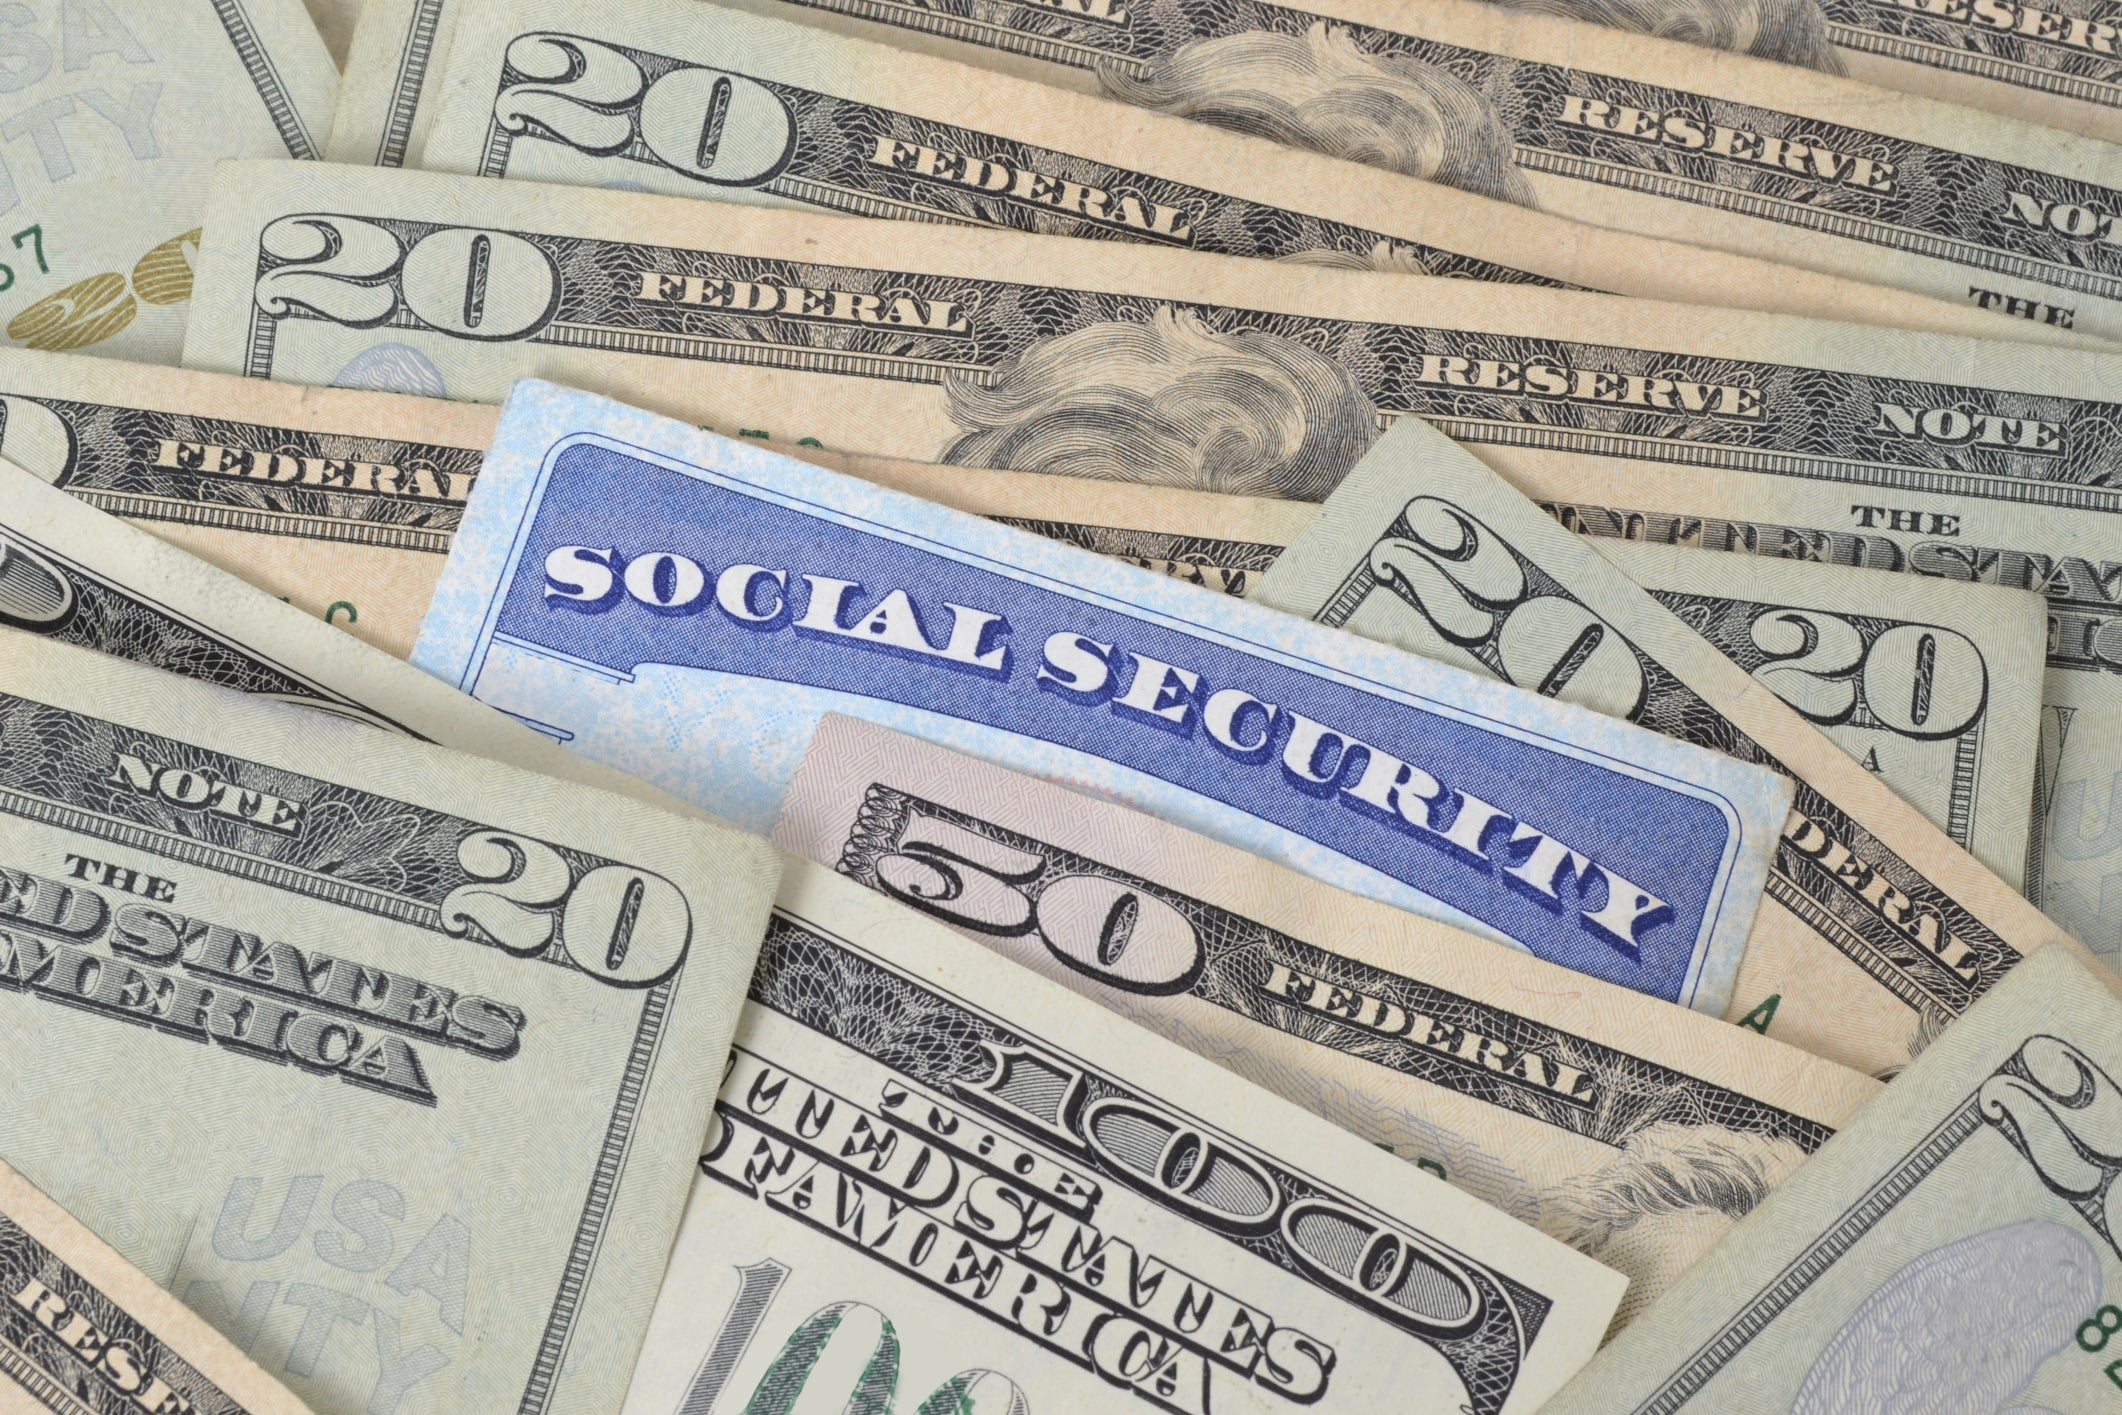 Social Security card nestled among dollar bills